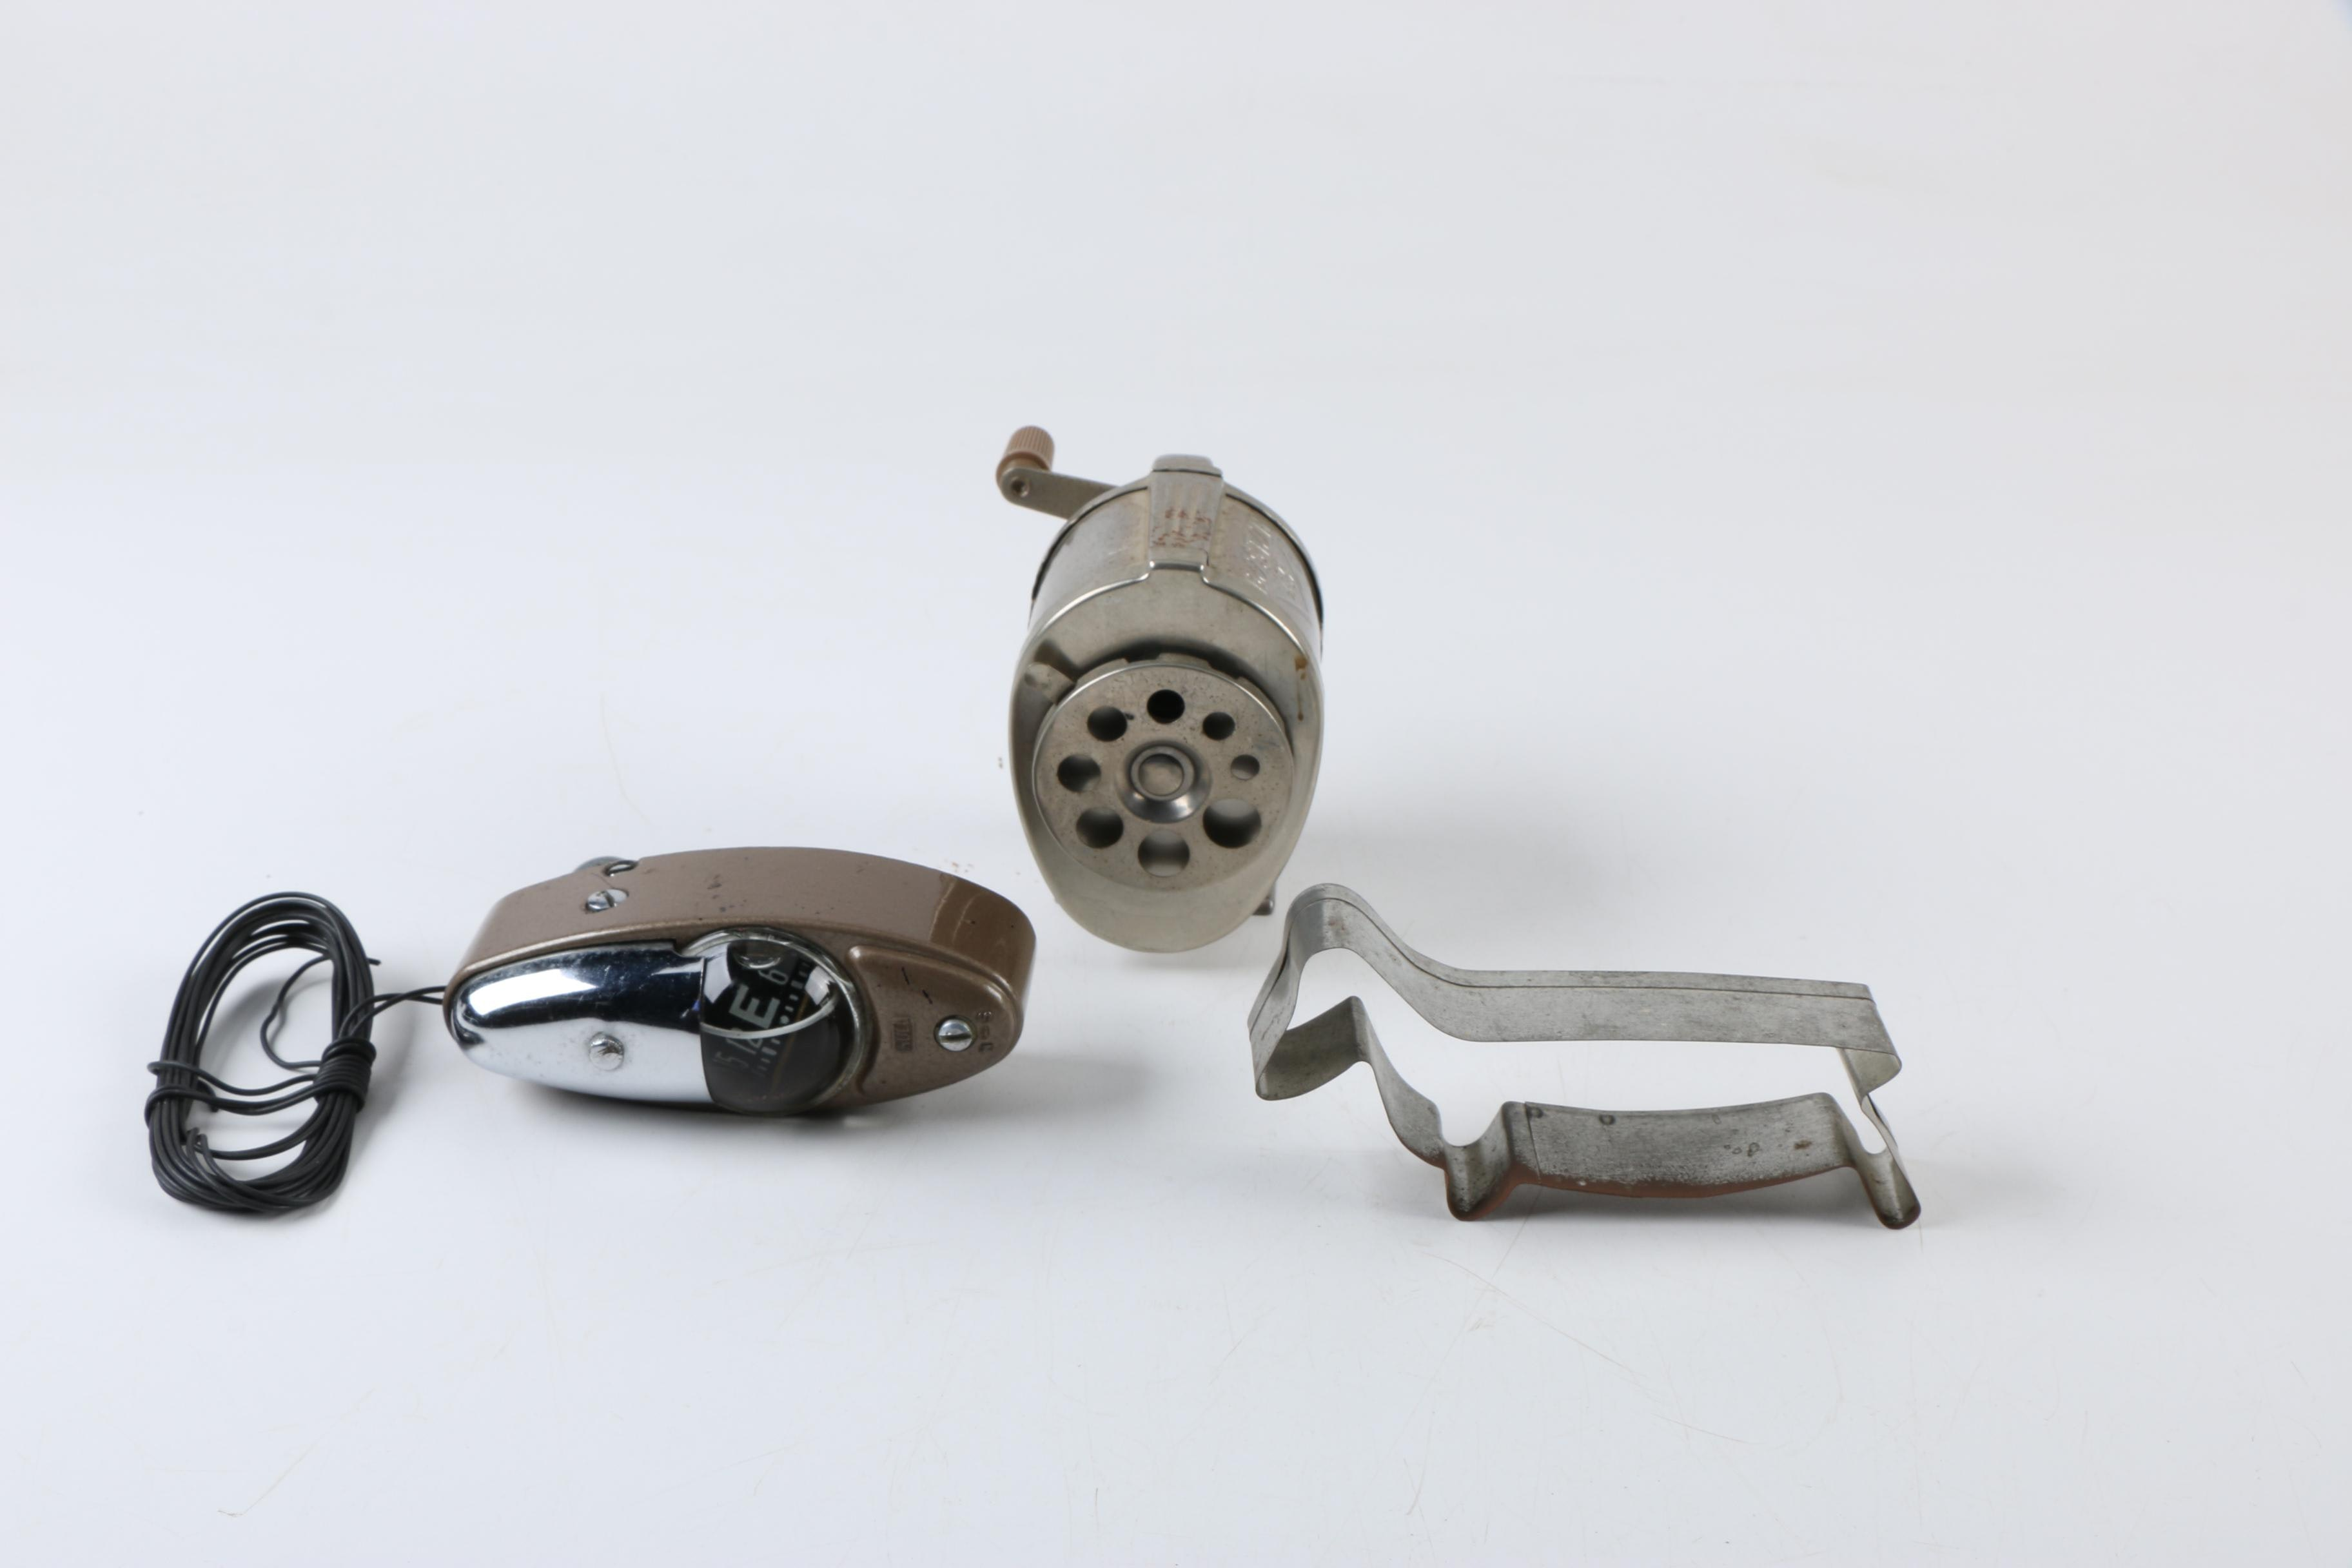 Vintage Pencil Sharpener, Compass, and Cookie Cutter